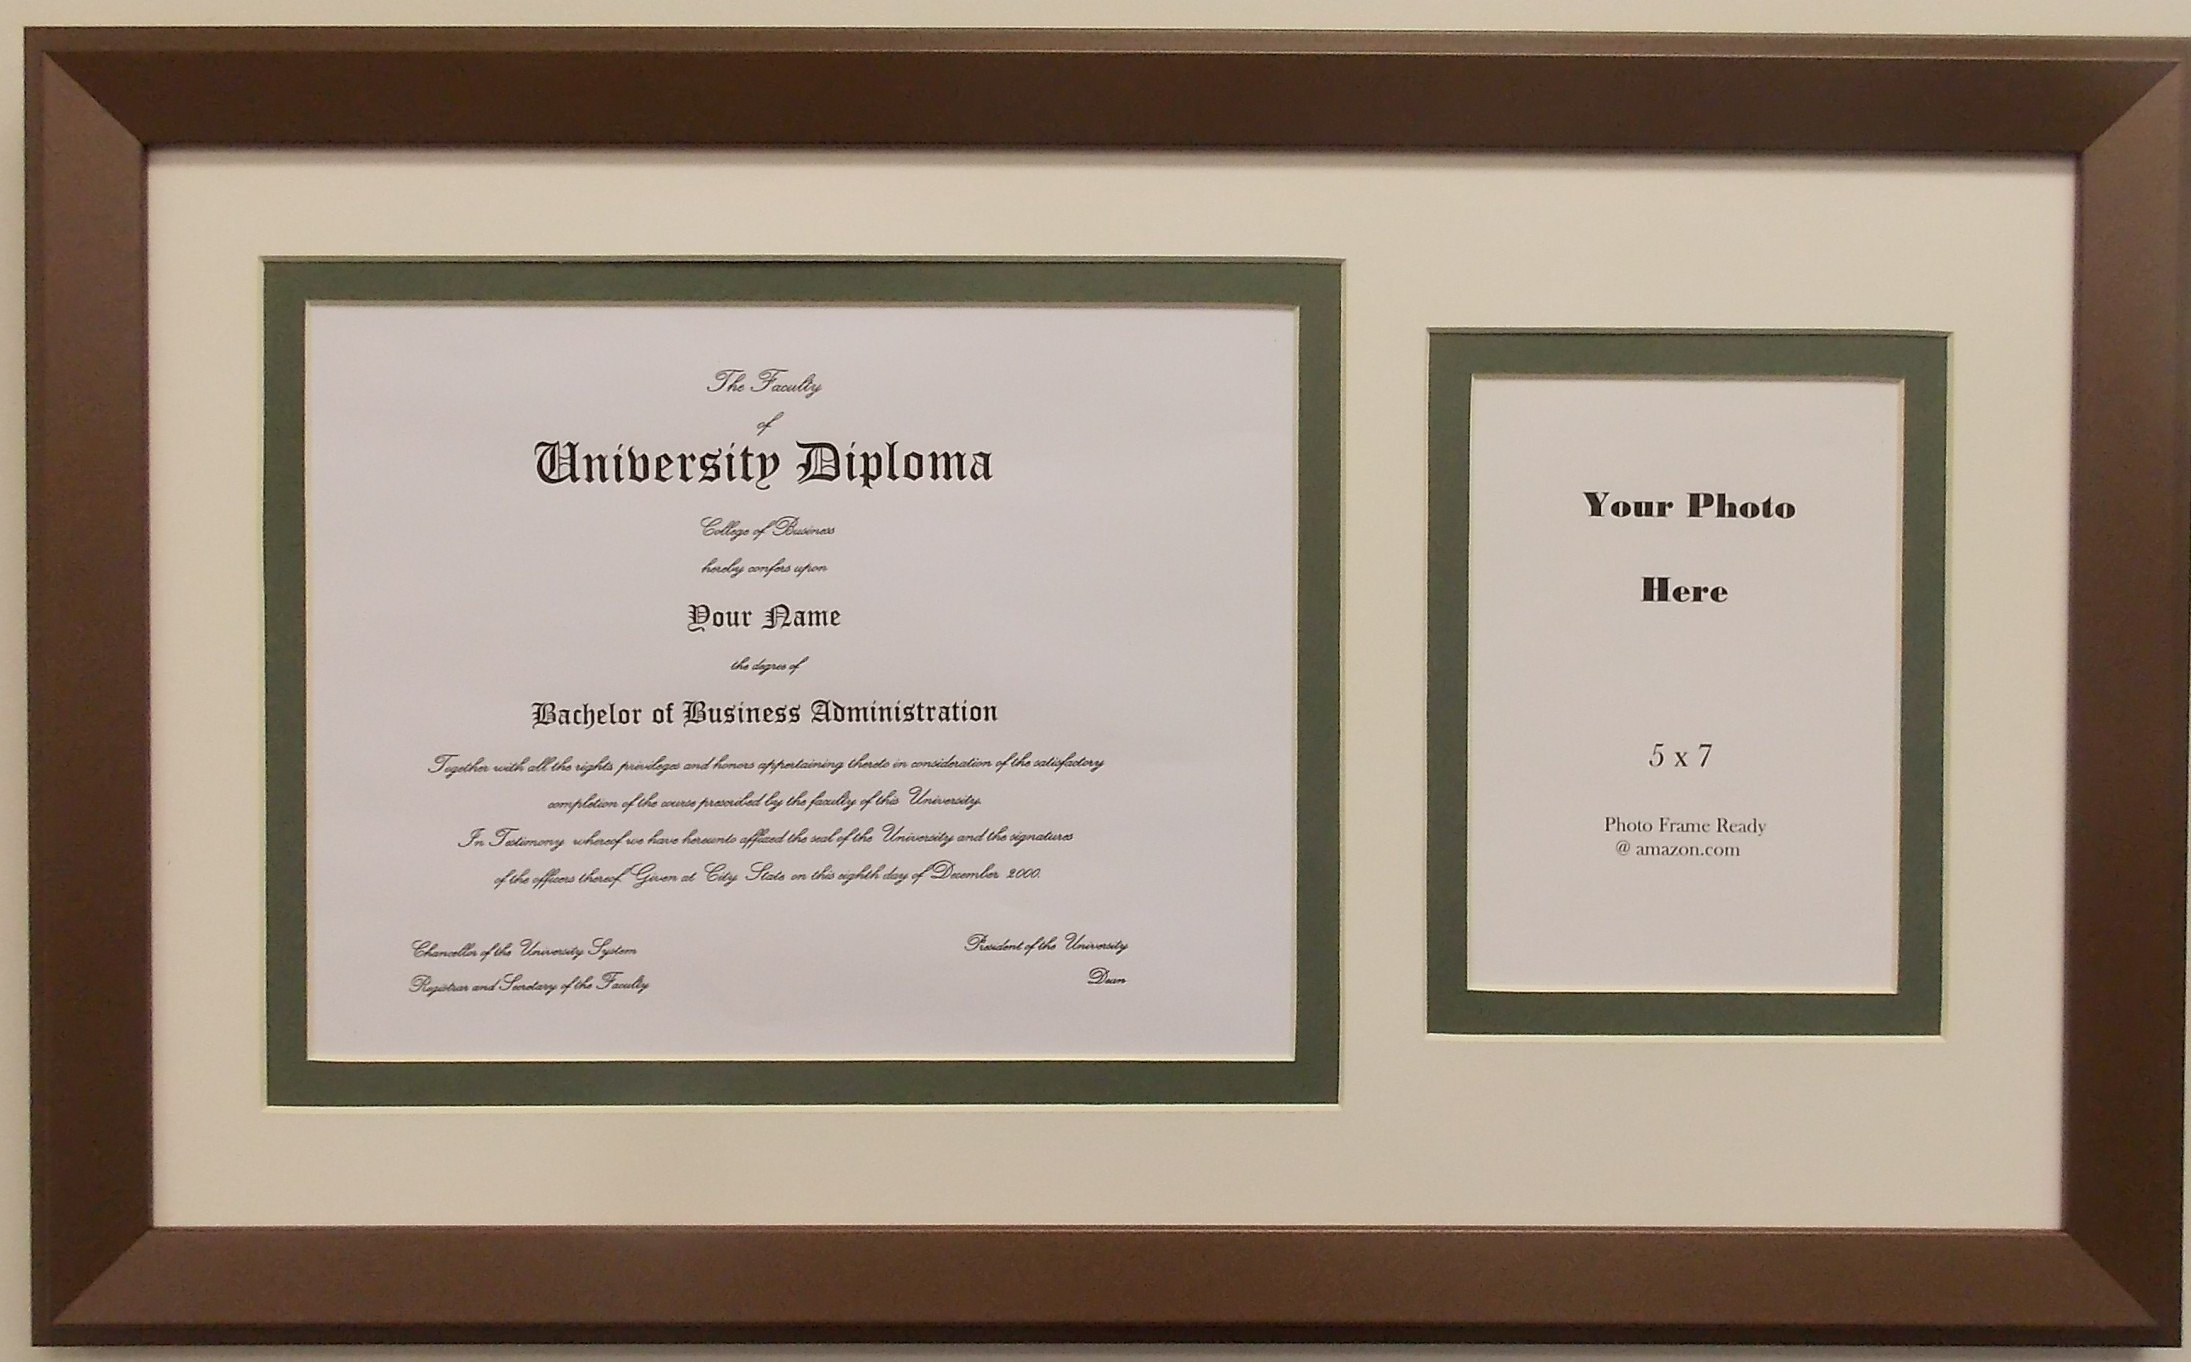 Graduation Diploma University 8.5 X 11 Certificate Photo Matted Frame with 5x7 Photo Opening by Photo Frame Ready (Image #1)